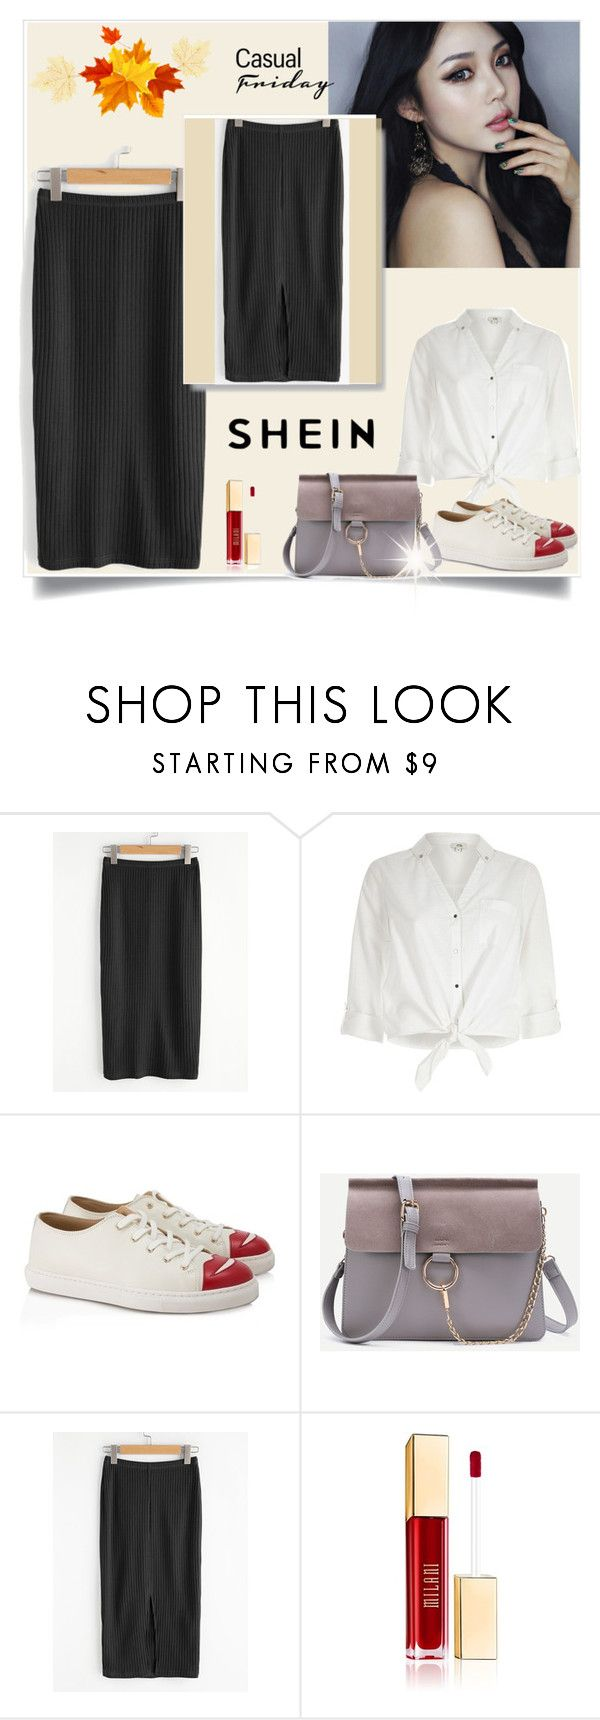 """Vented Back Rib Knit Skirt"" by almedina-mehic ❤ liked on Polyvore featuring River Island and Charlotte Olympia"